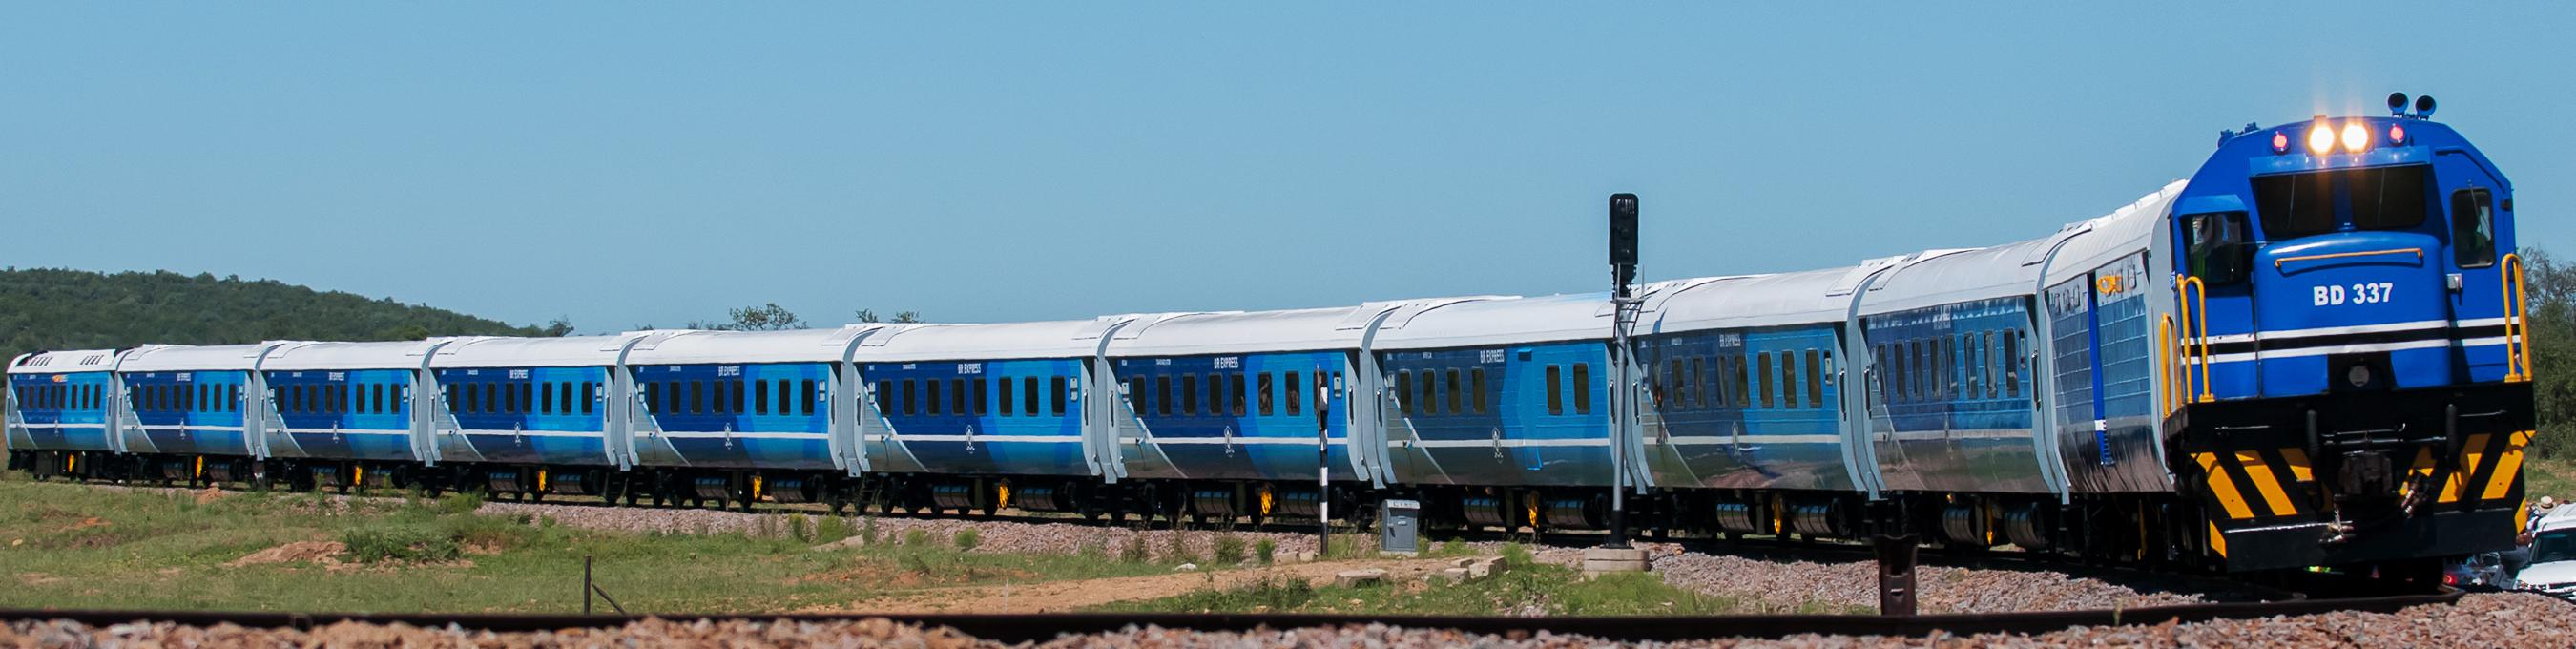 Locomotives Botswana Railways Train Diesel Engine Diagram Ones Destination Is Never A Place But New Way Of Seeing Things